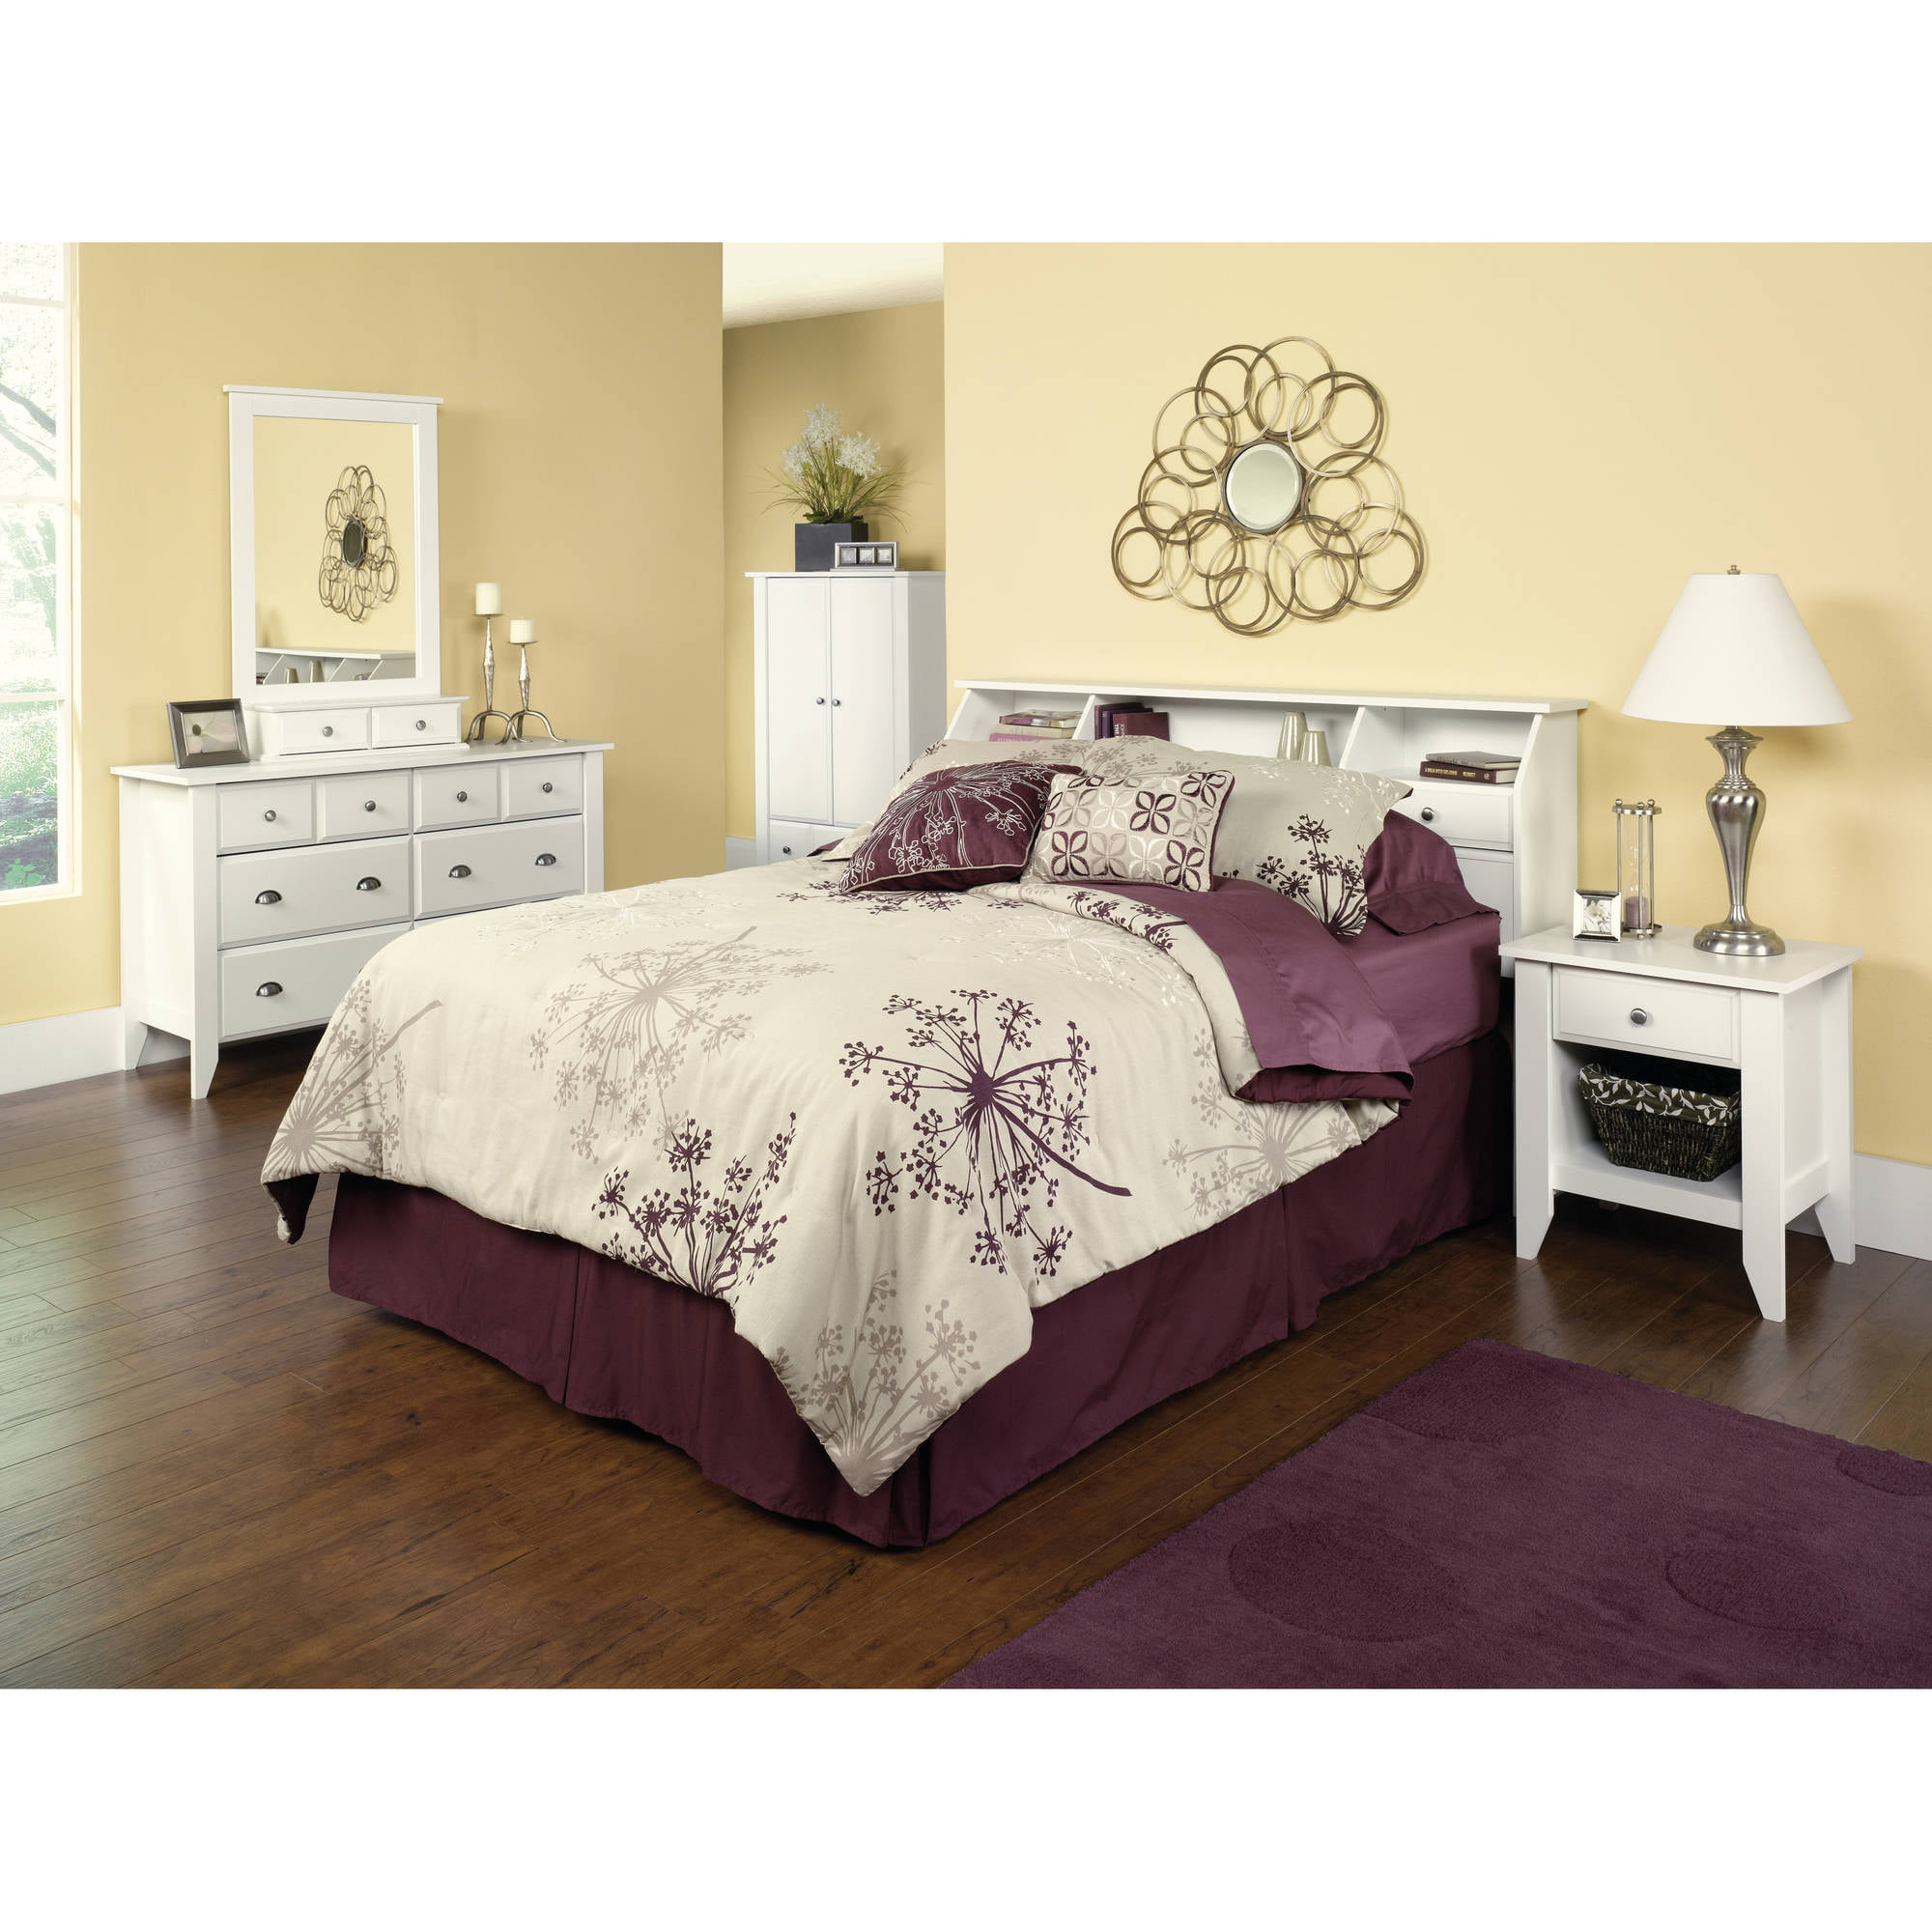 Storage Bedroom Furniture White Full Queen Headboard